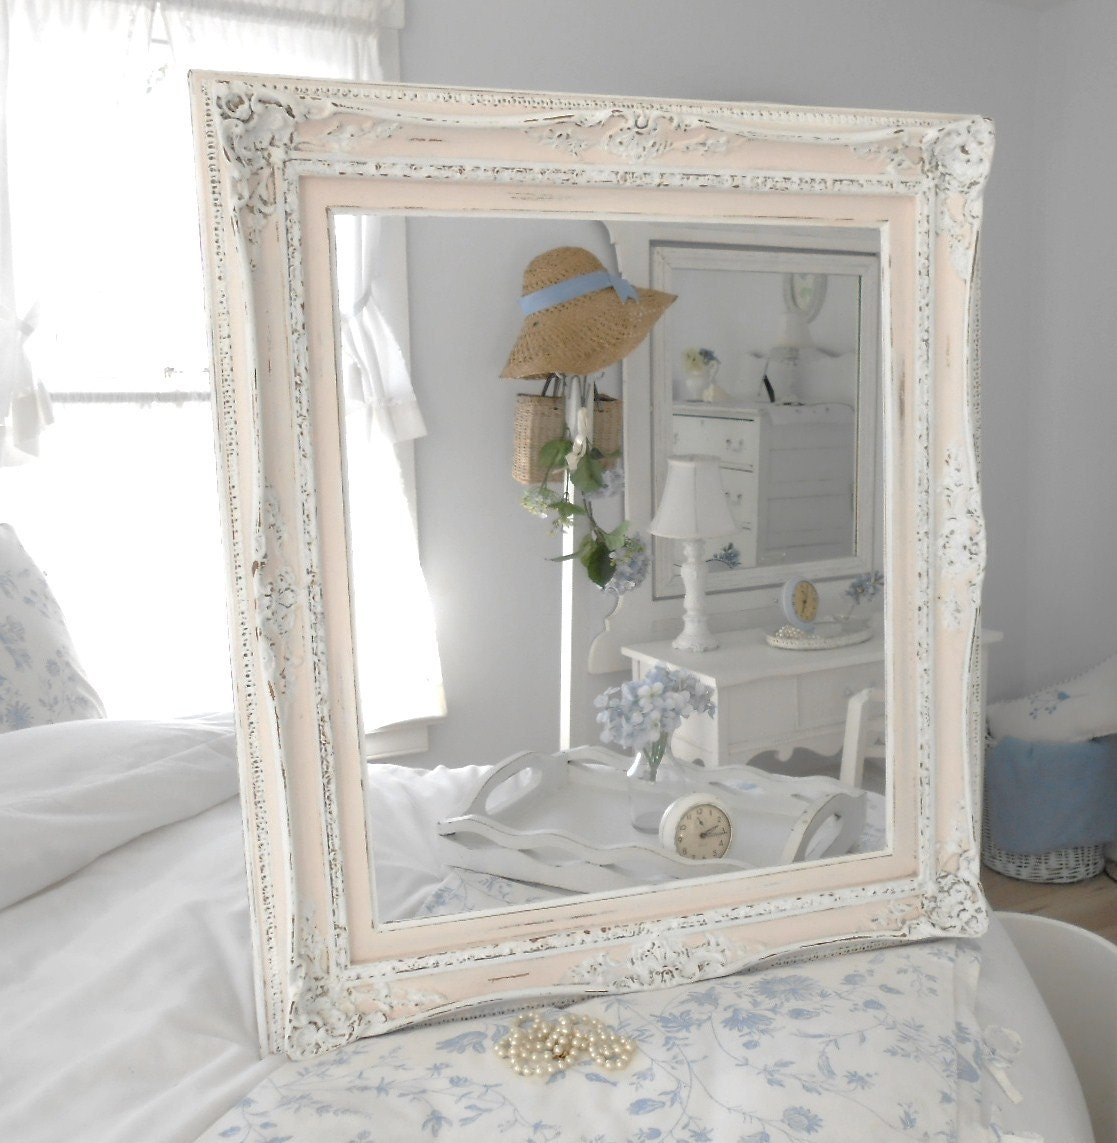 Romantic and vintage shabby chic decor ideas Home design ideas shabby chic